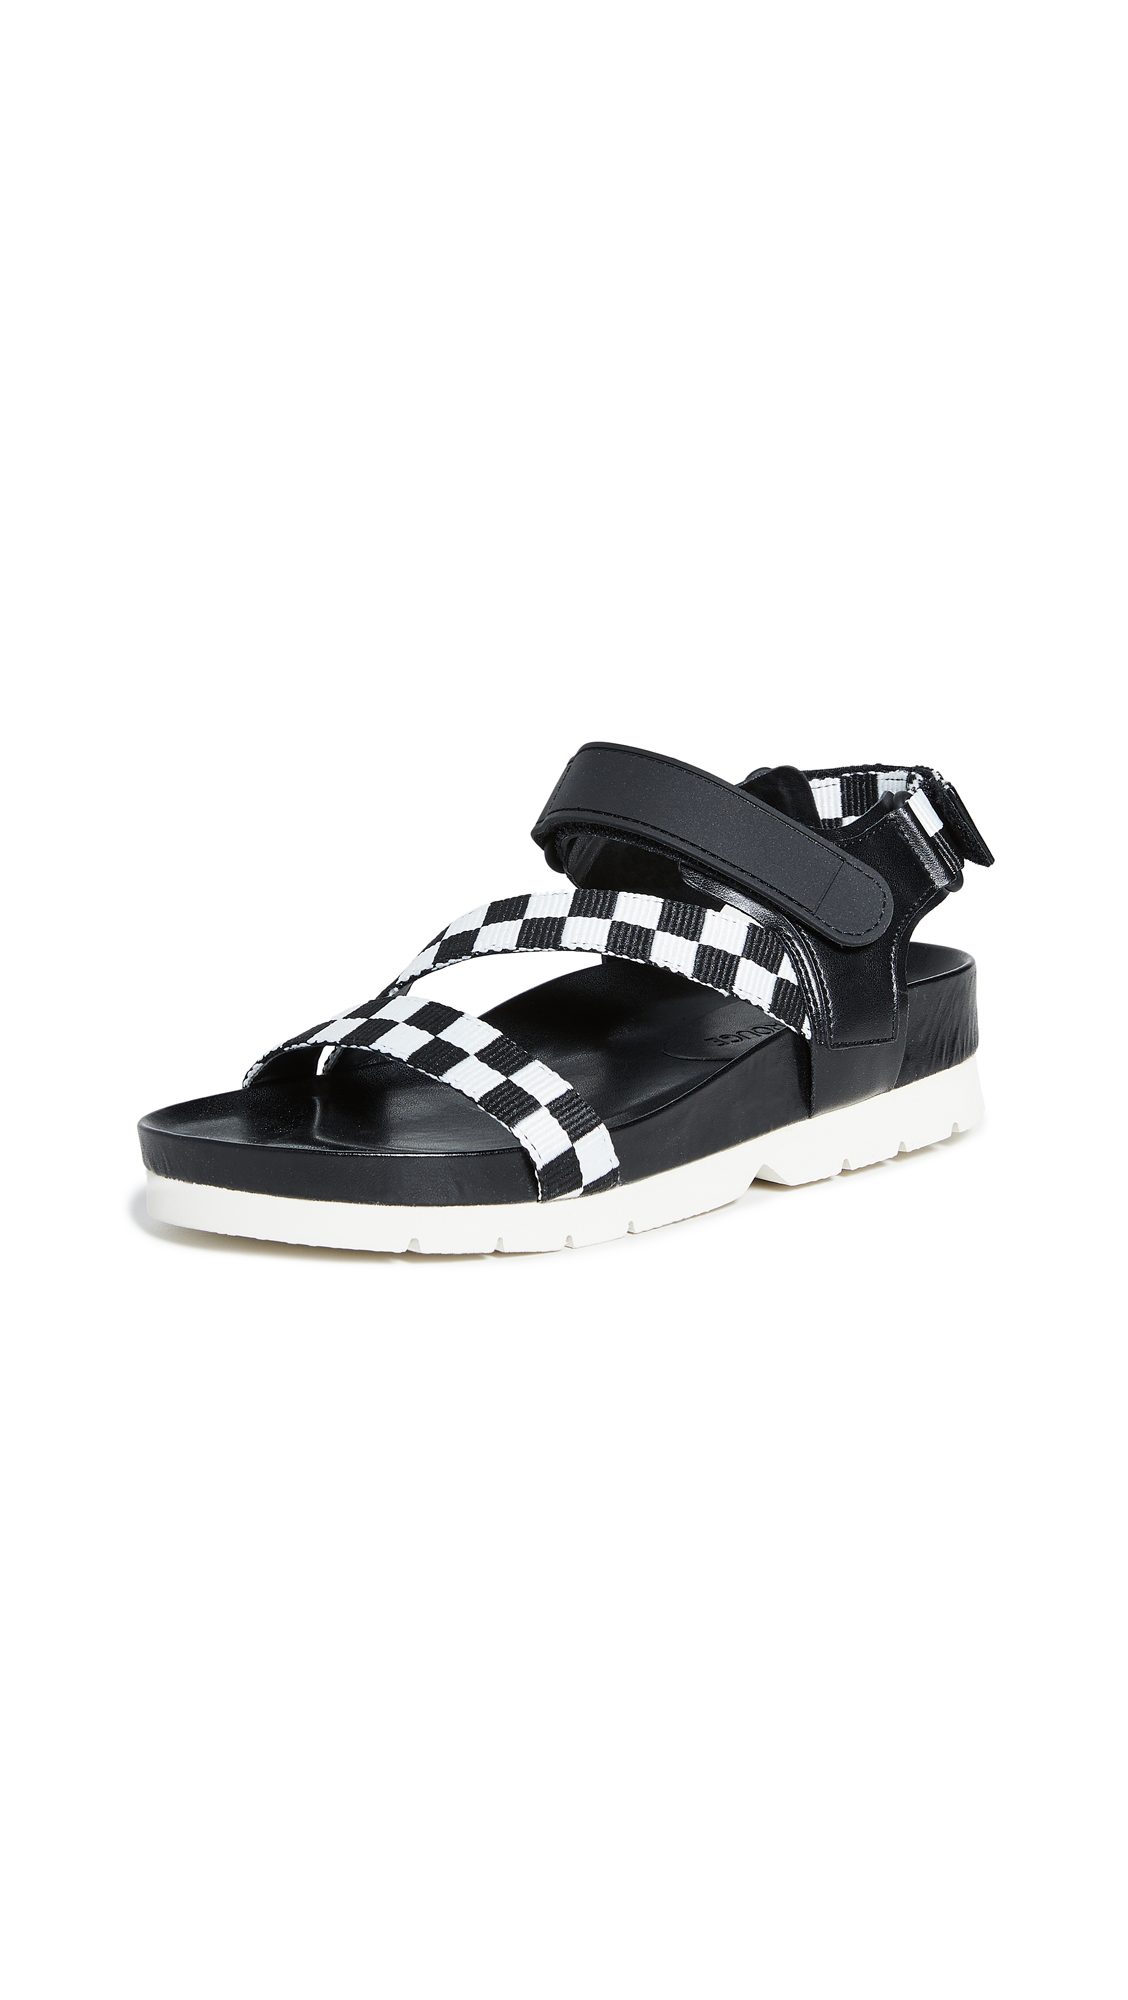 Villa Rouge Elena Sporty Sandals - 60% Off Sale